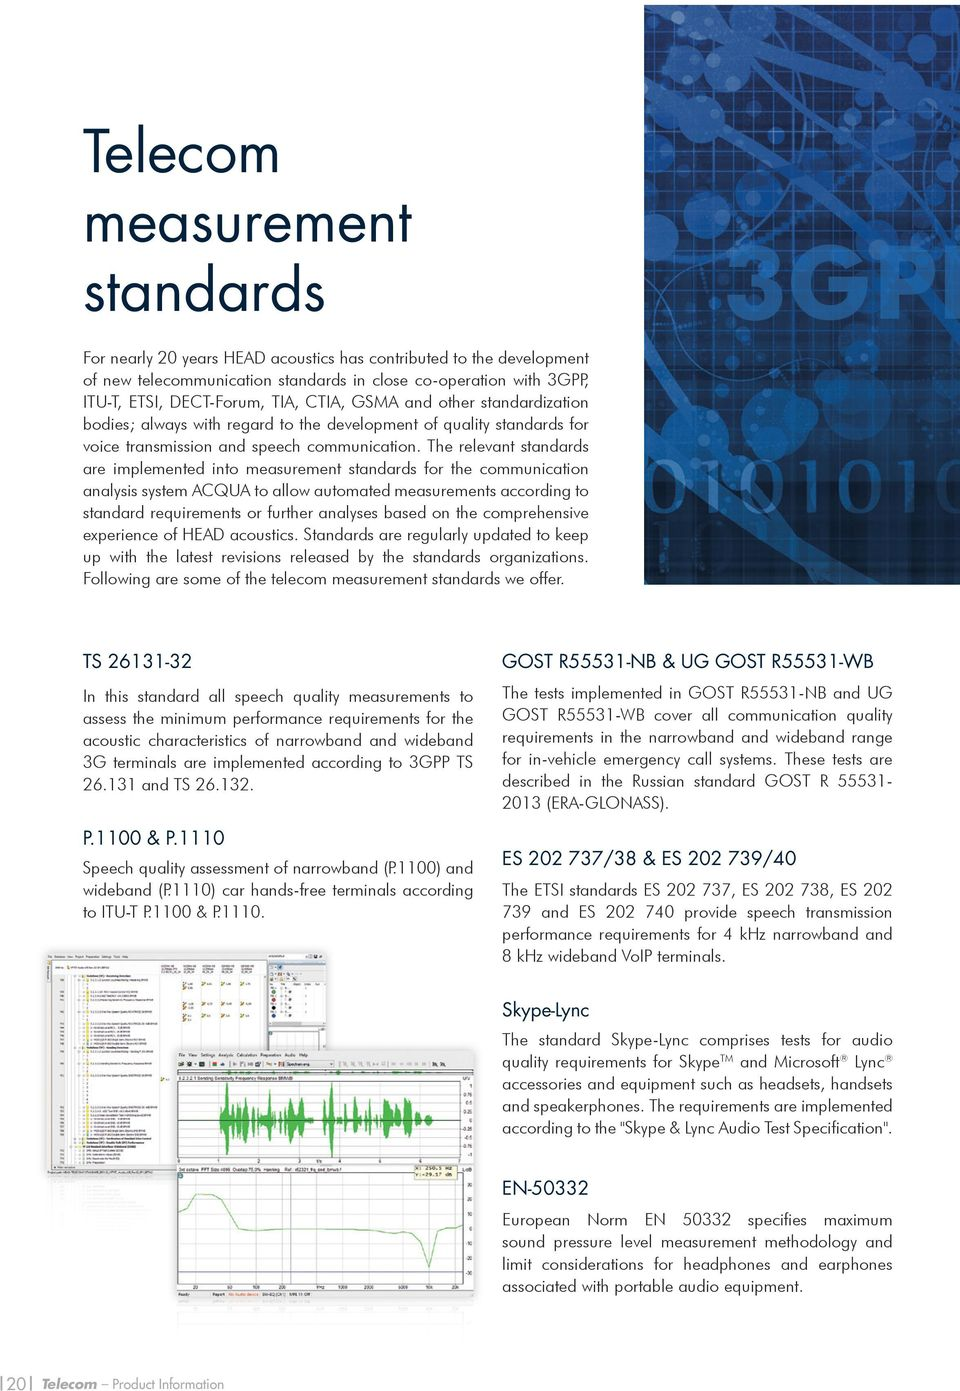 The relevant standards are implemented into measurement standards for the communication analysis system ACQUA to allow automated measurements according to standard requirements or further analyses